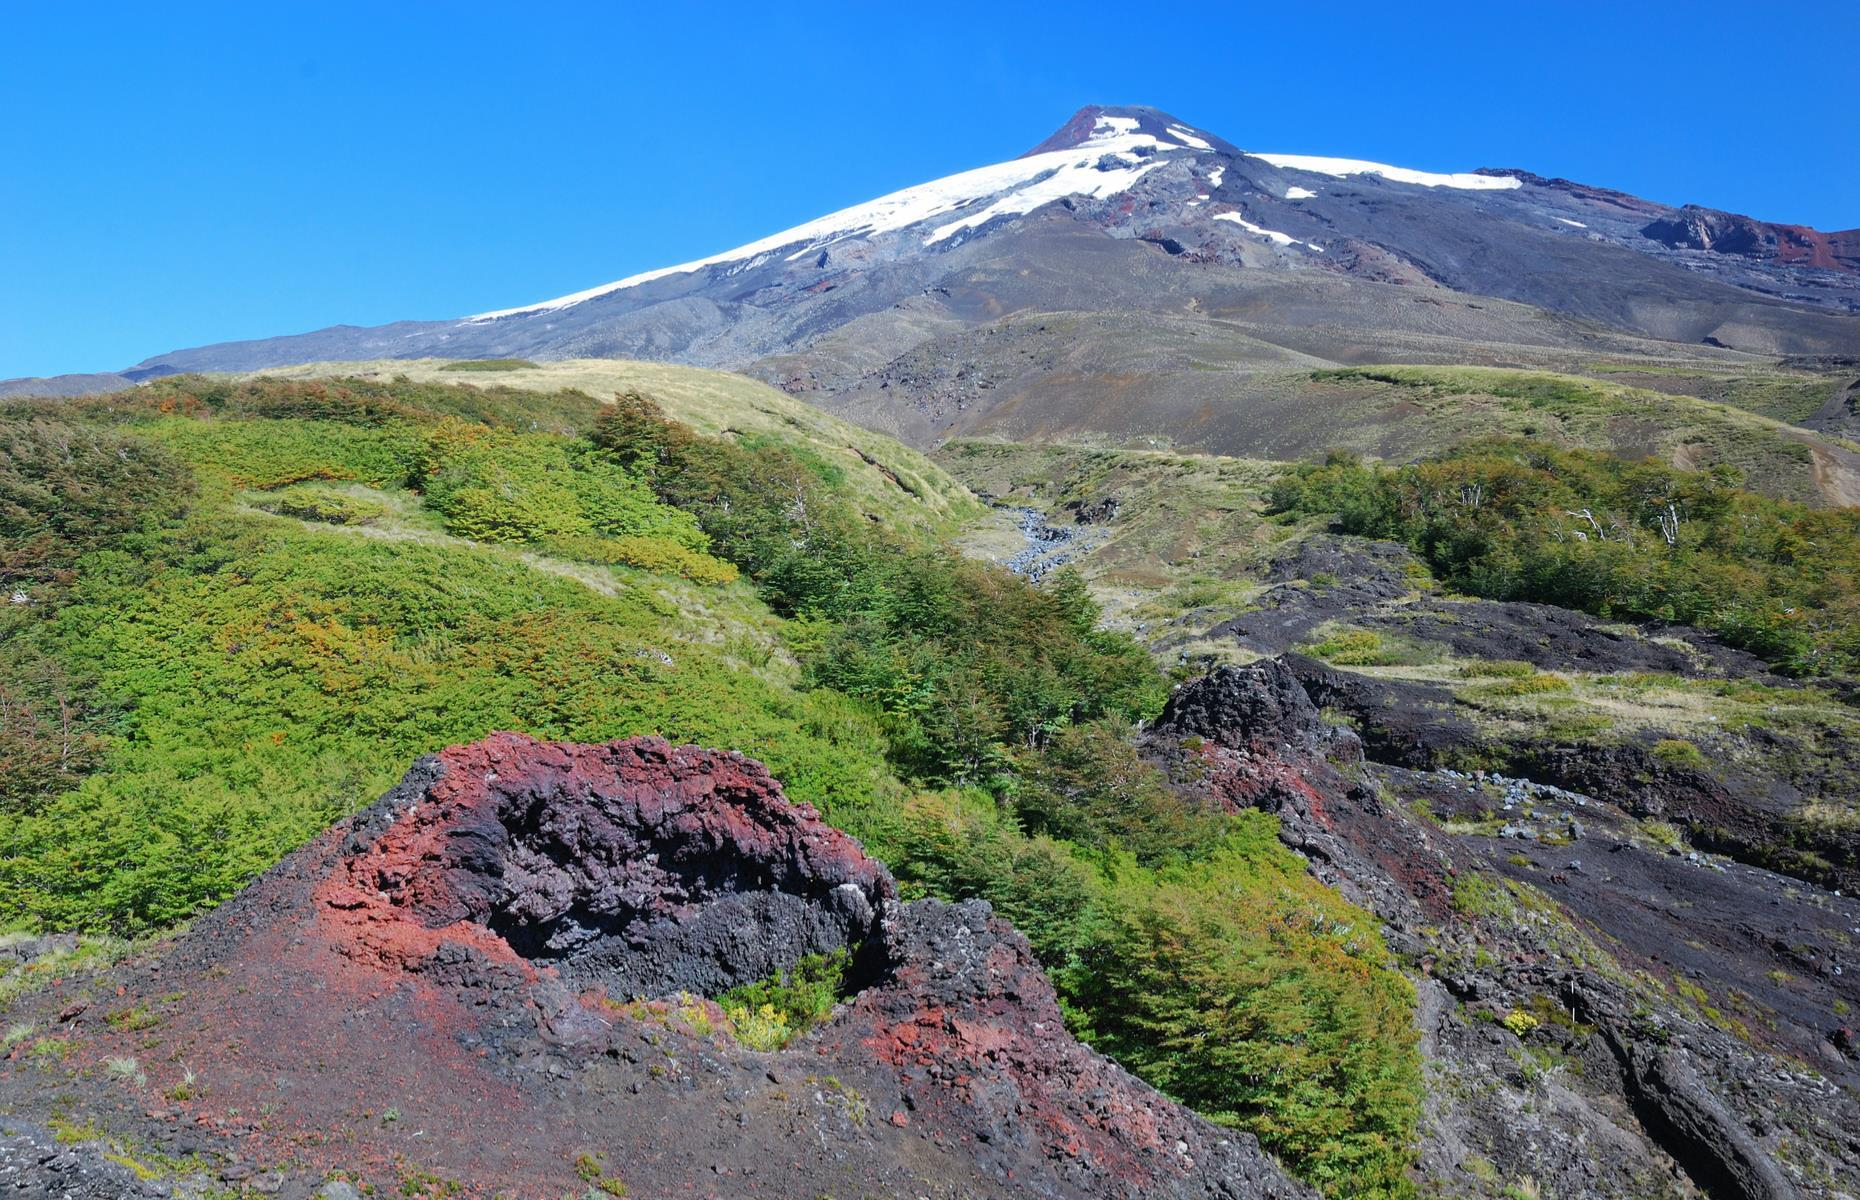 Slide 20 of 41: Villarrica, along with Quetrupillán and the Chilean portion of Lanín, falls inside Villarrica National Park in Chile's central valley. Permanently active, the glacier volcano often has a lava lake at its summit.